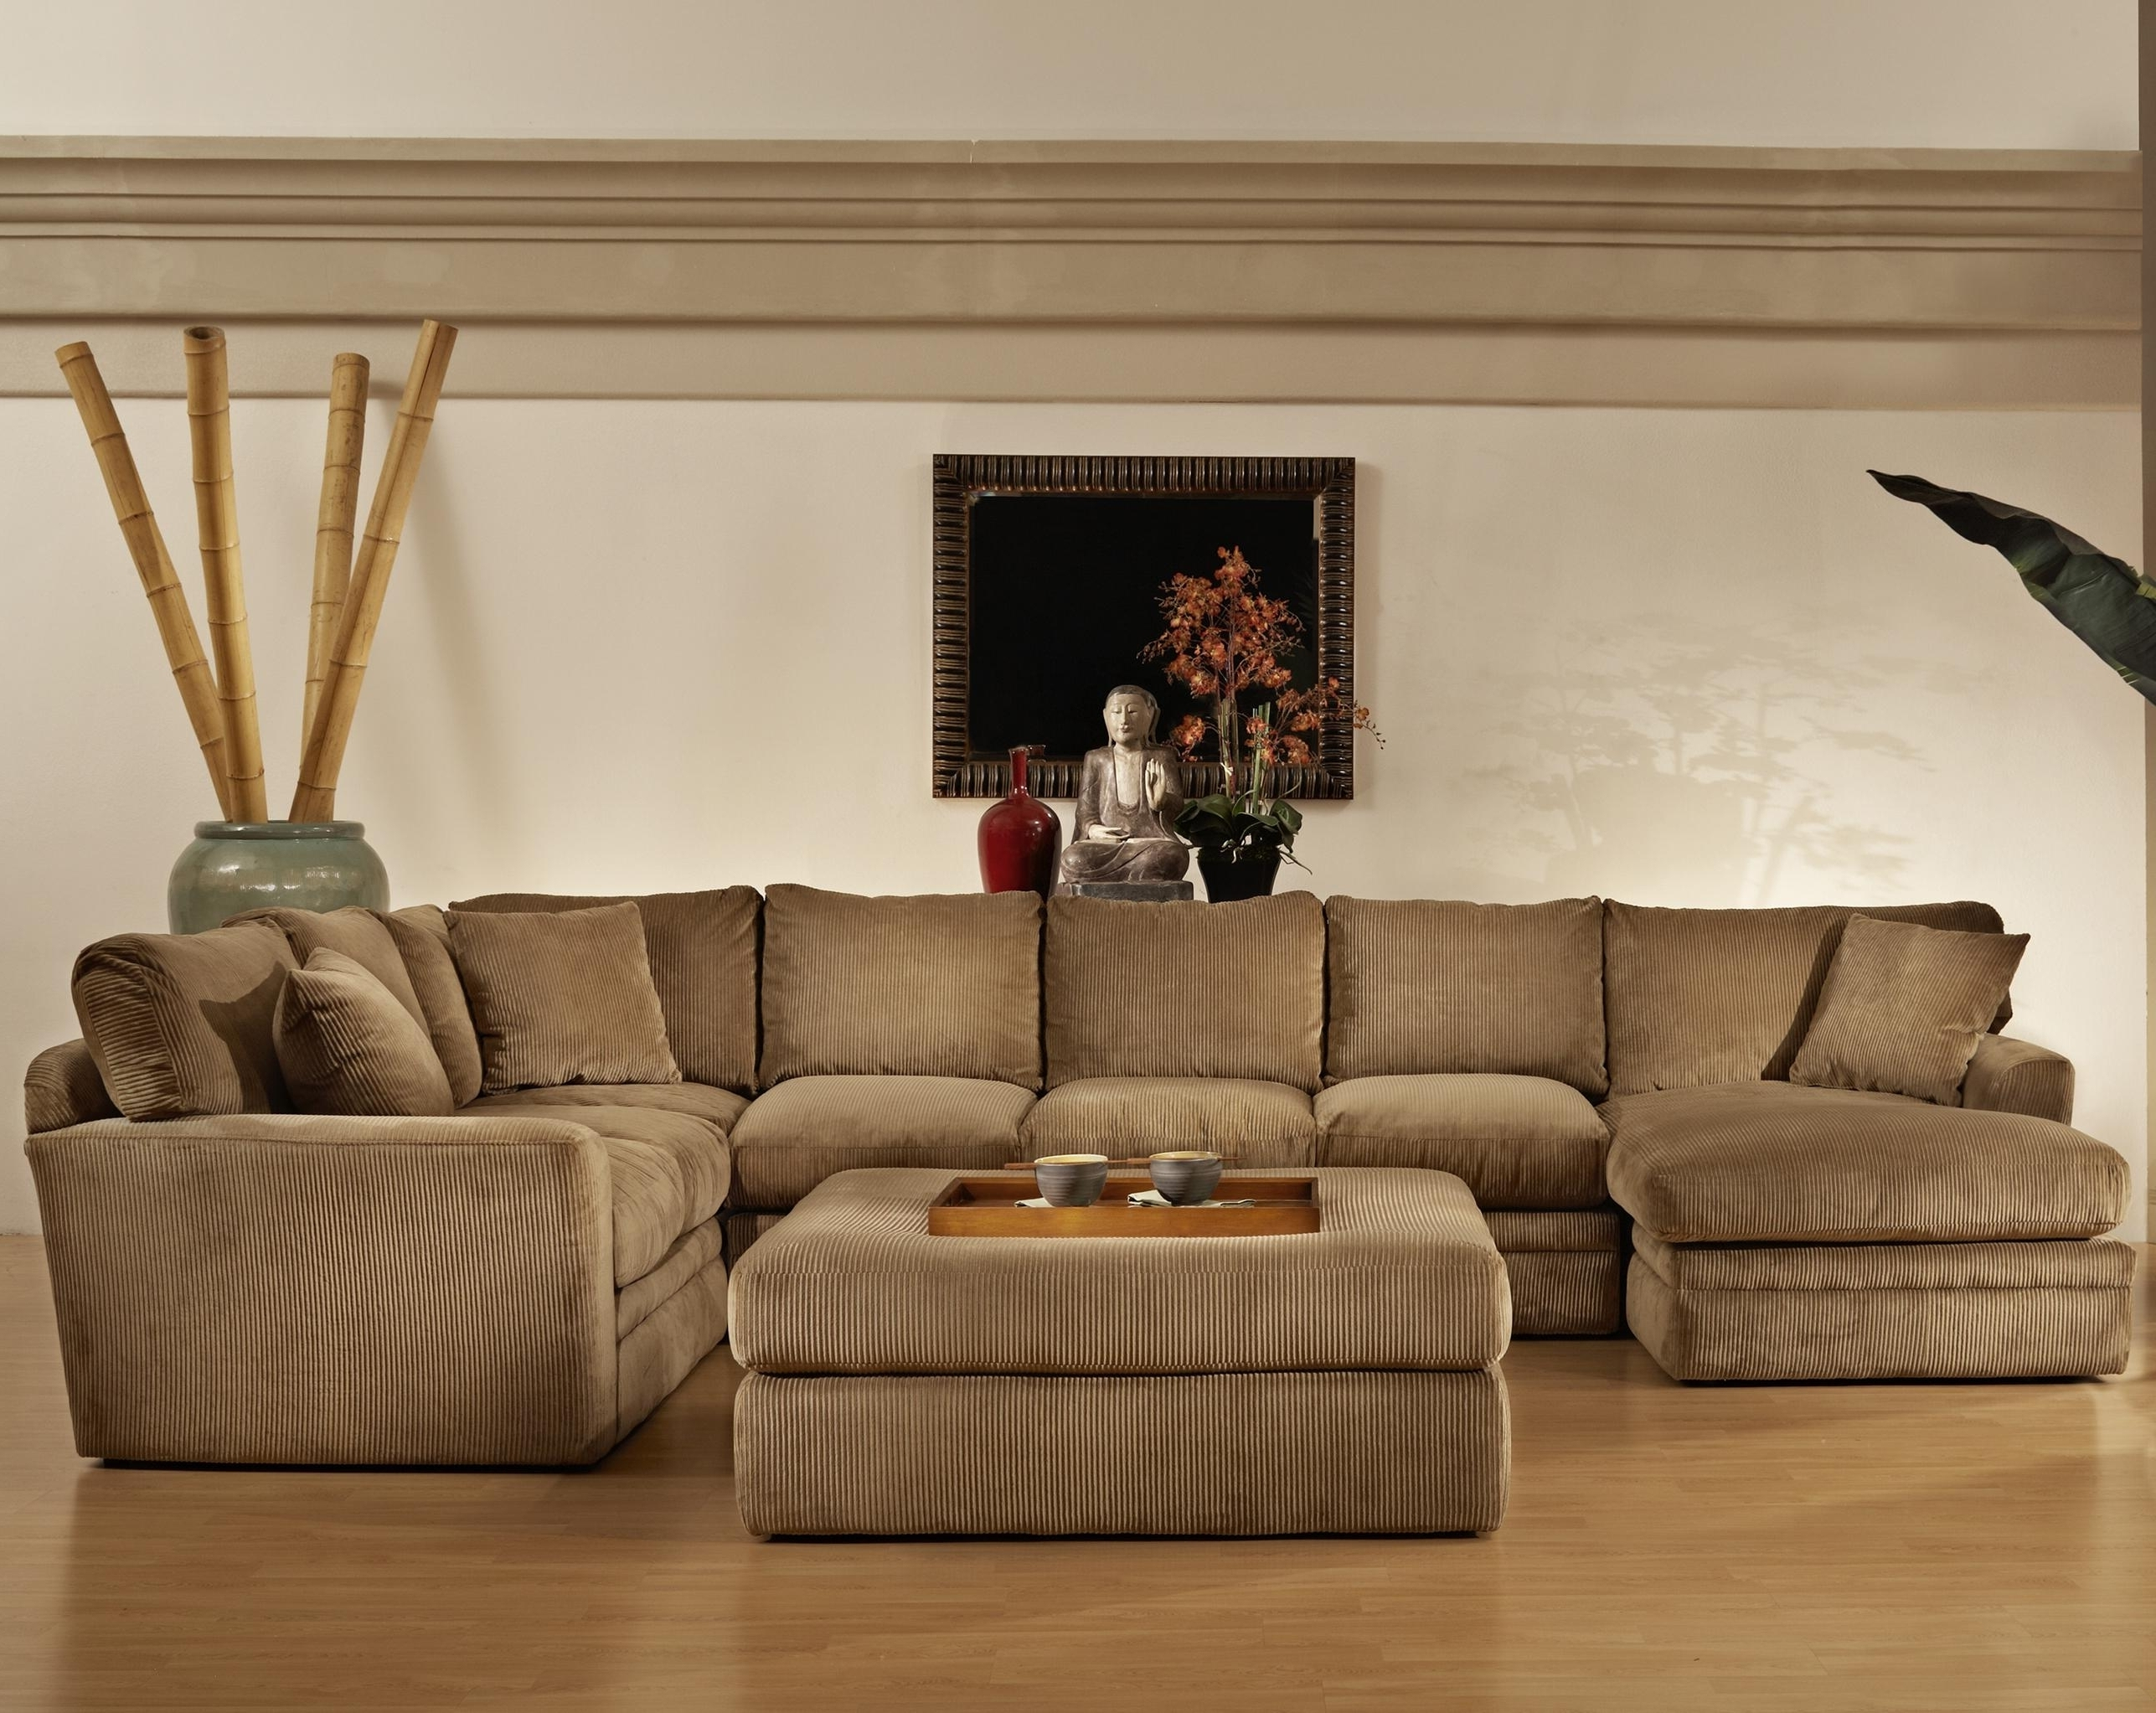 Popular Wide Seat Sectional Sofas In Transitional Style Extra Large Sectional Sofas With Chaise Baker (View 13 of 20)